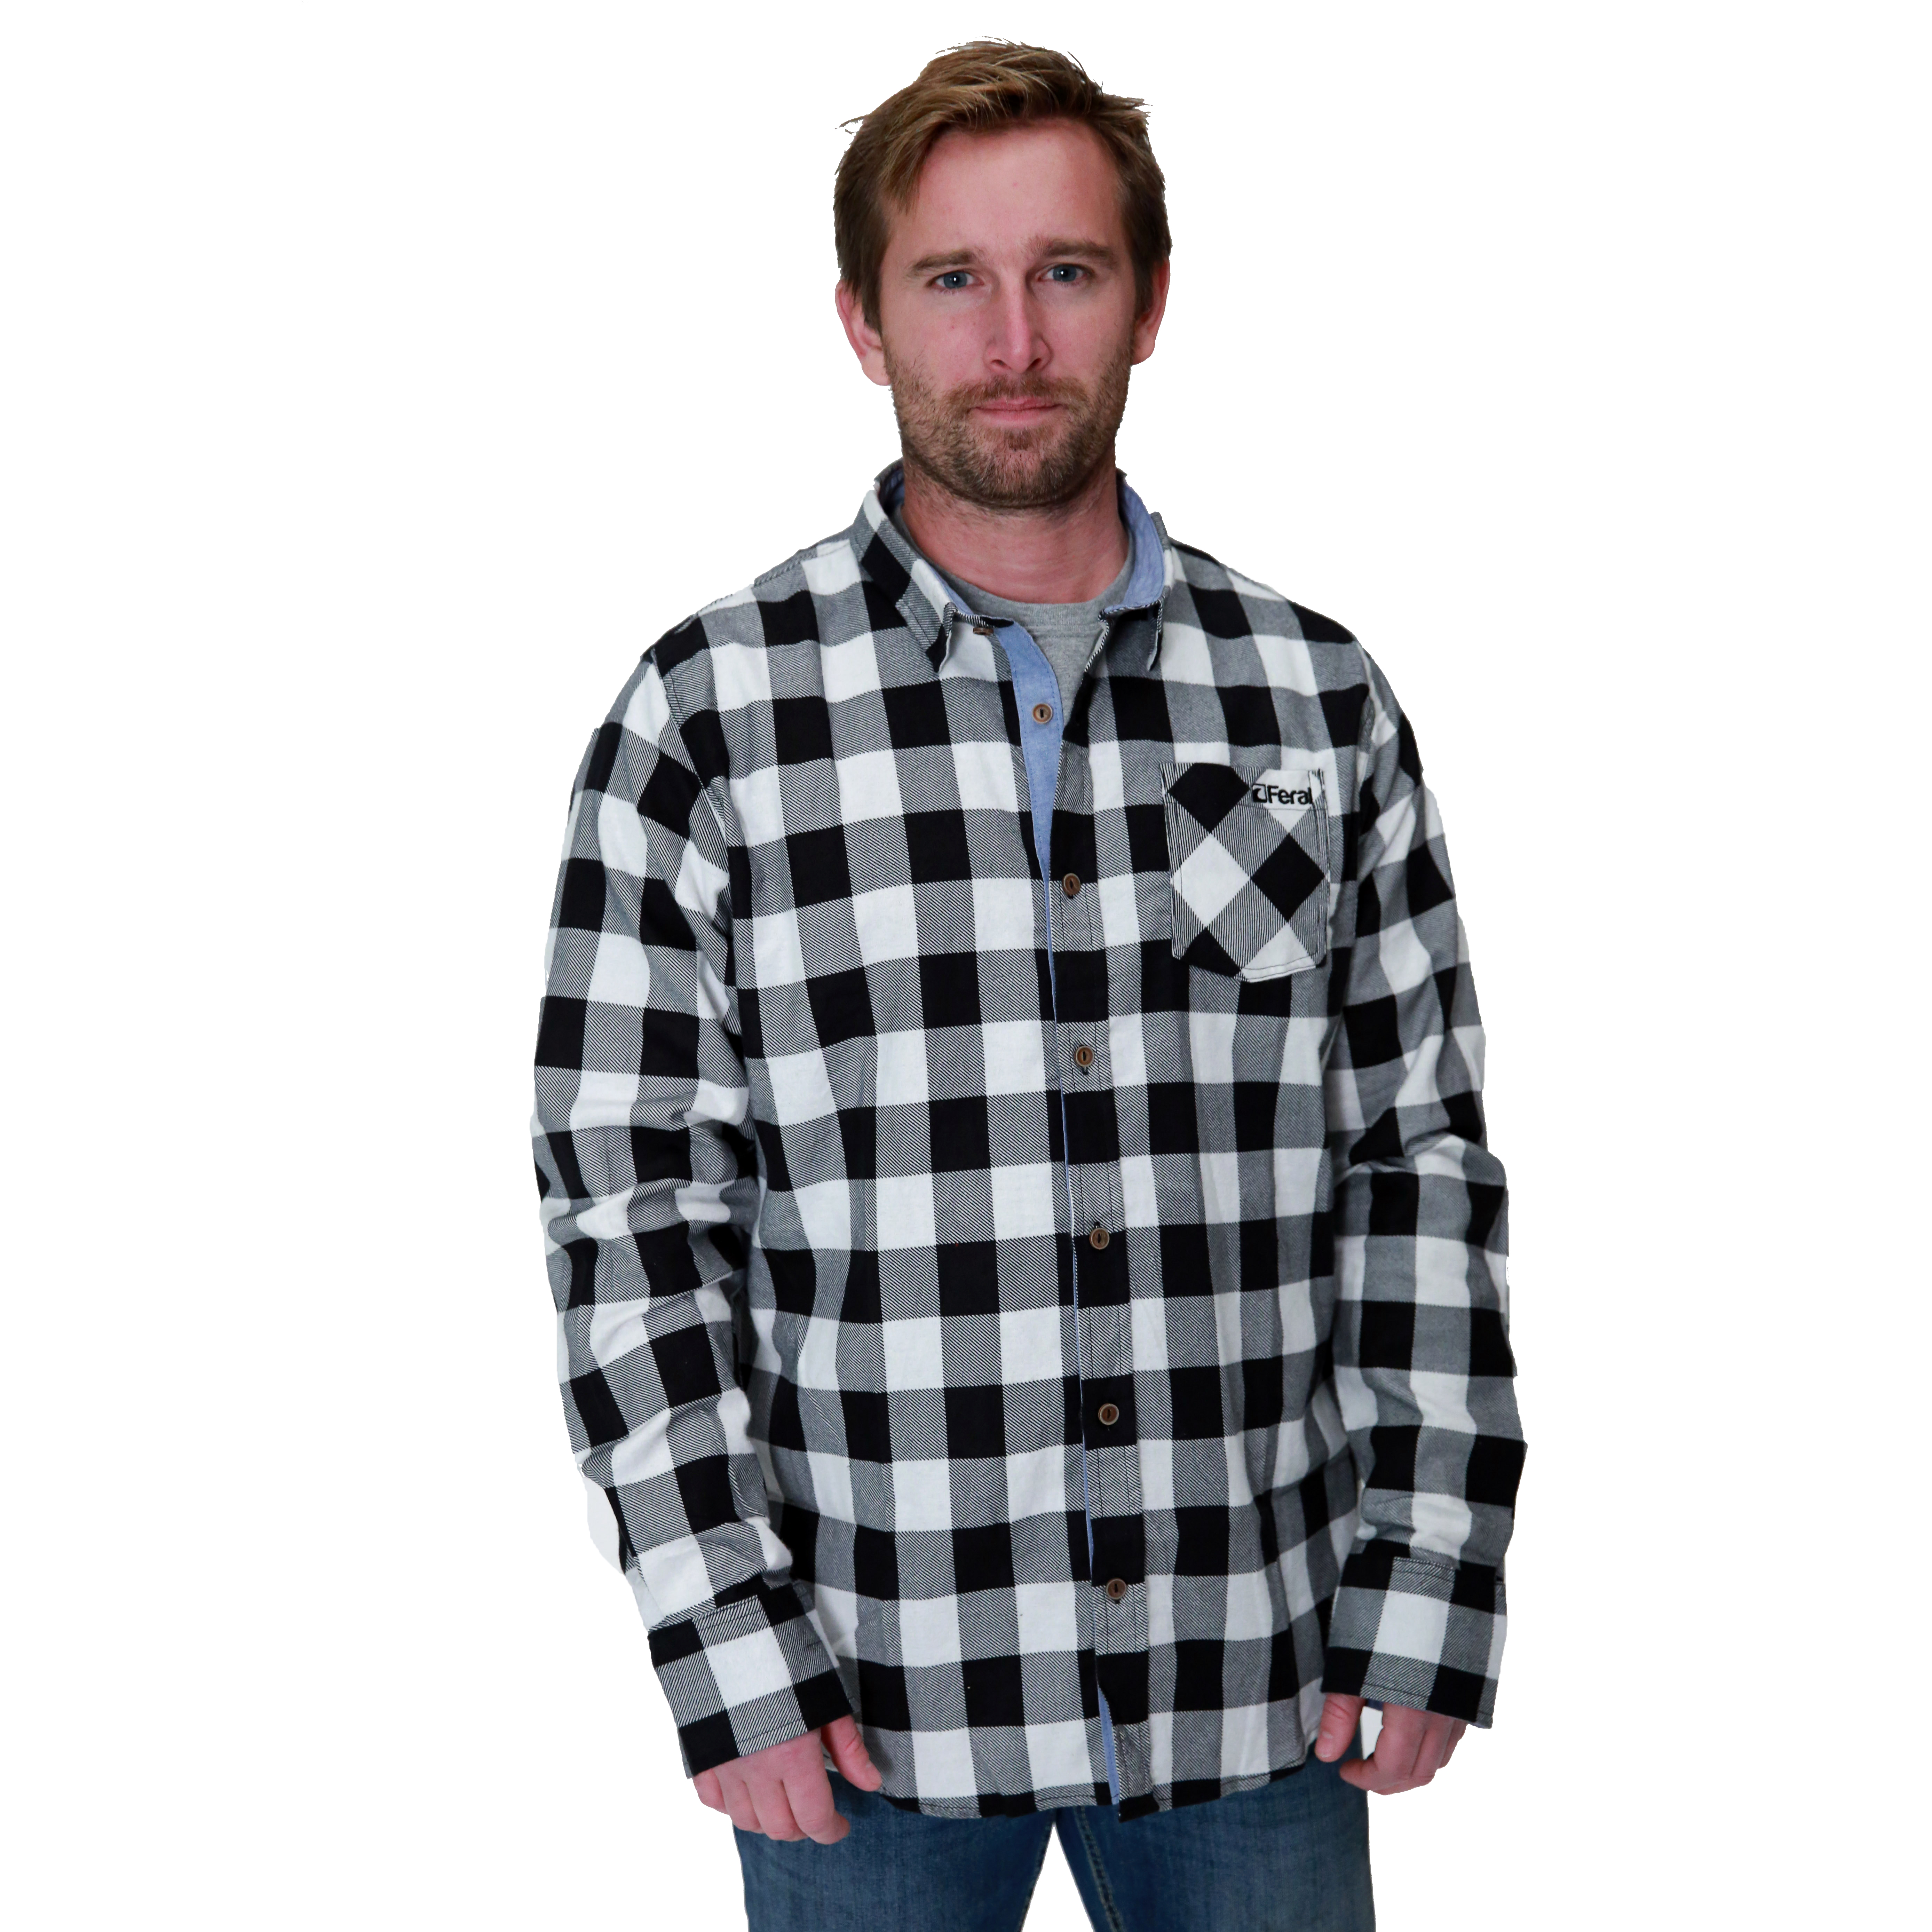 Feral Classic Check Shirt – White & Black (Copy)